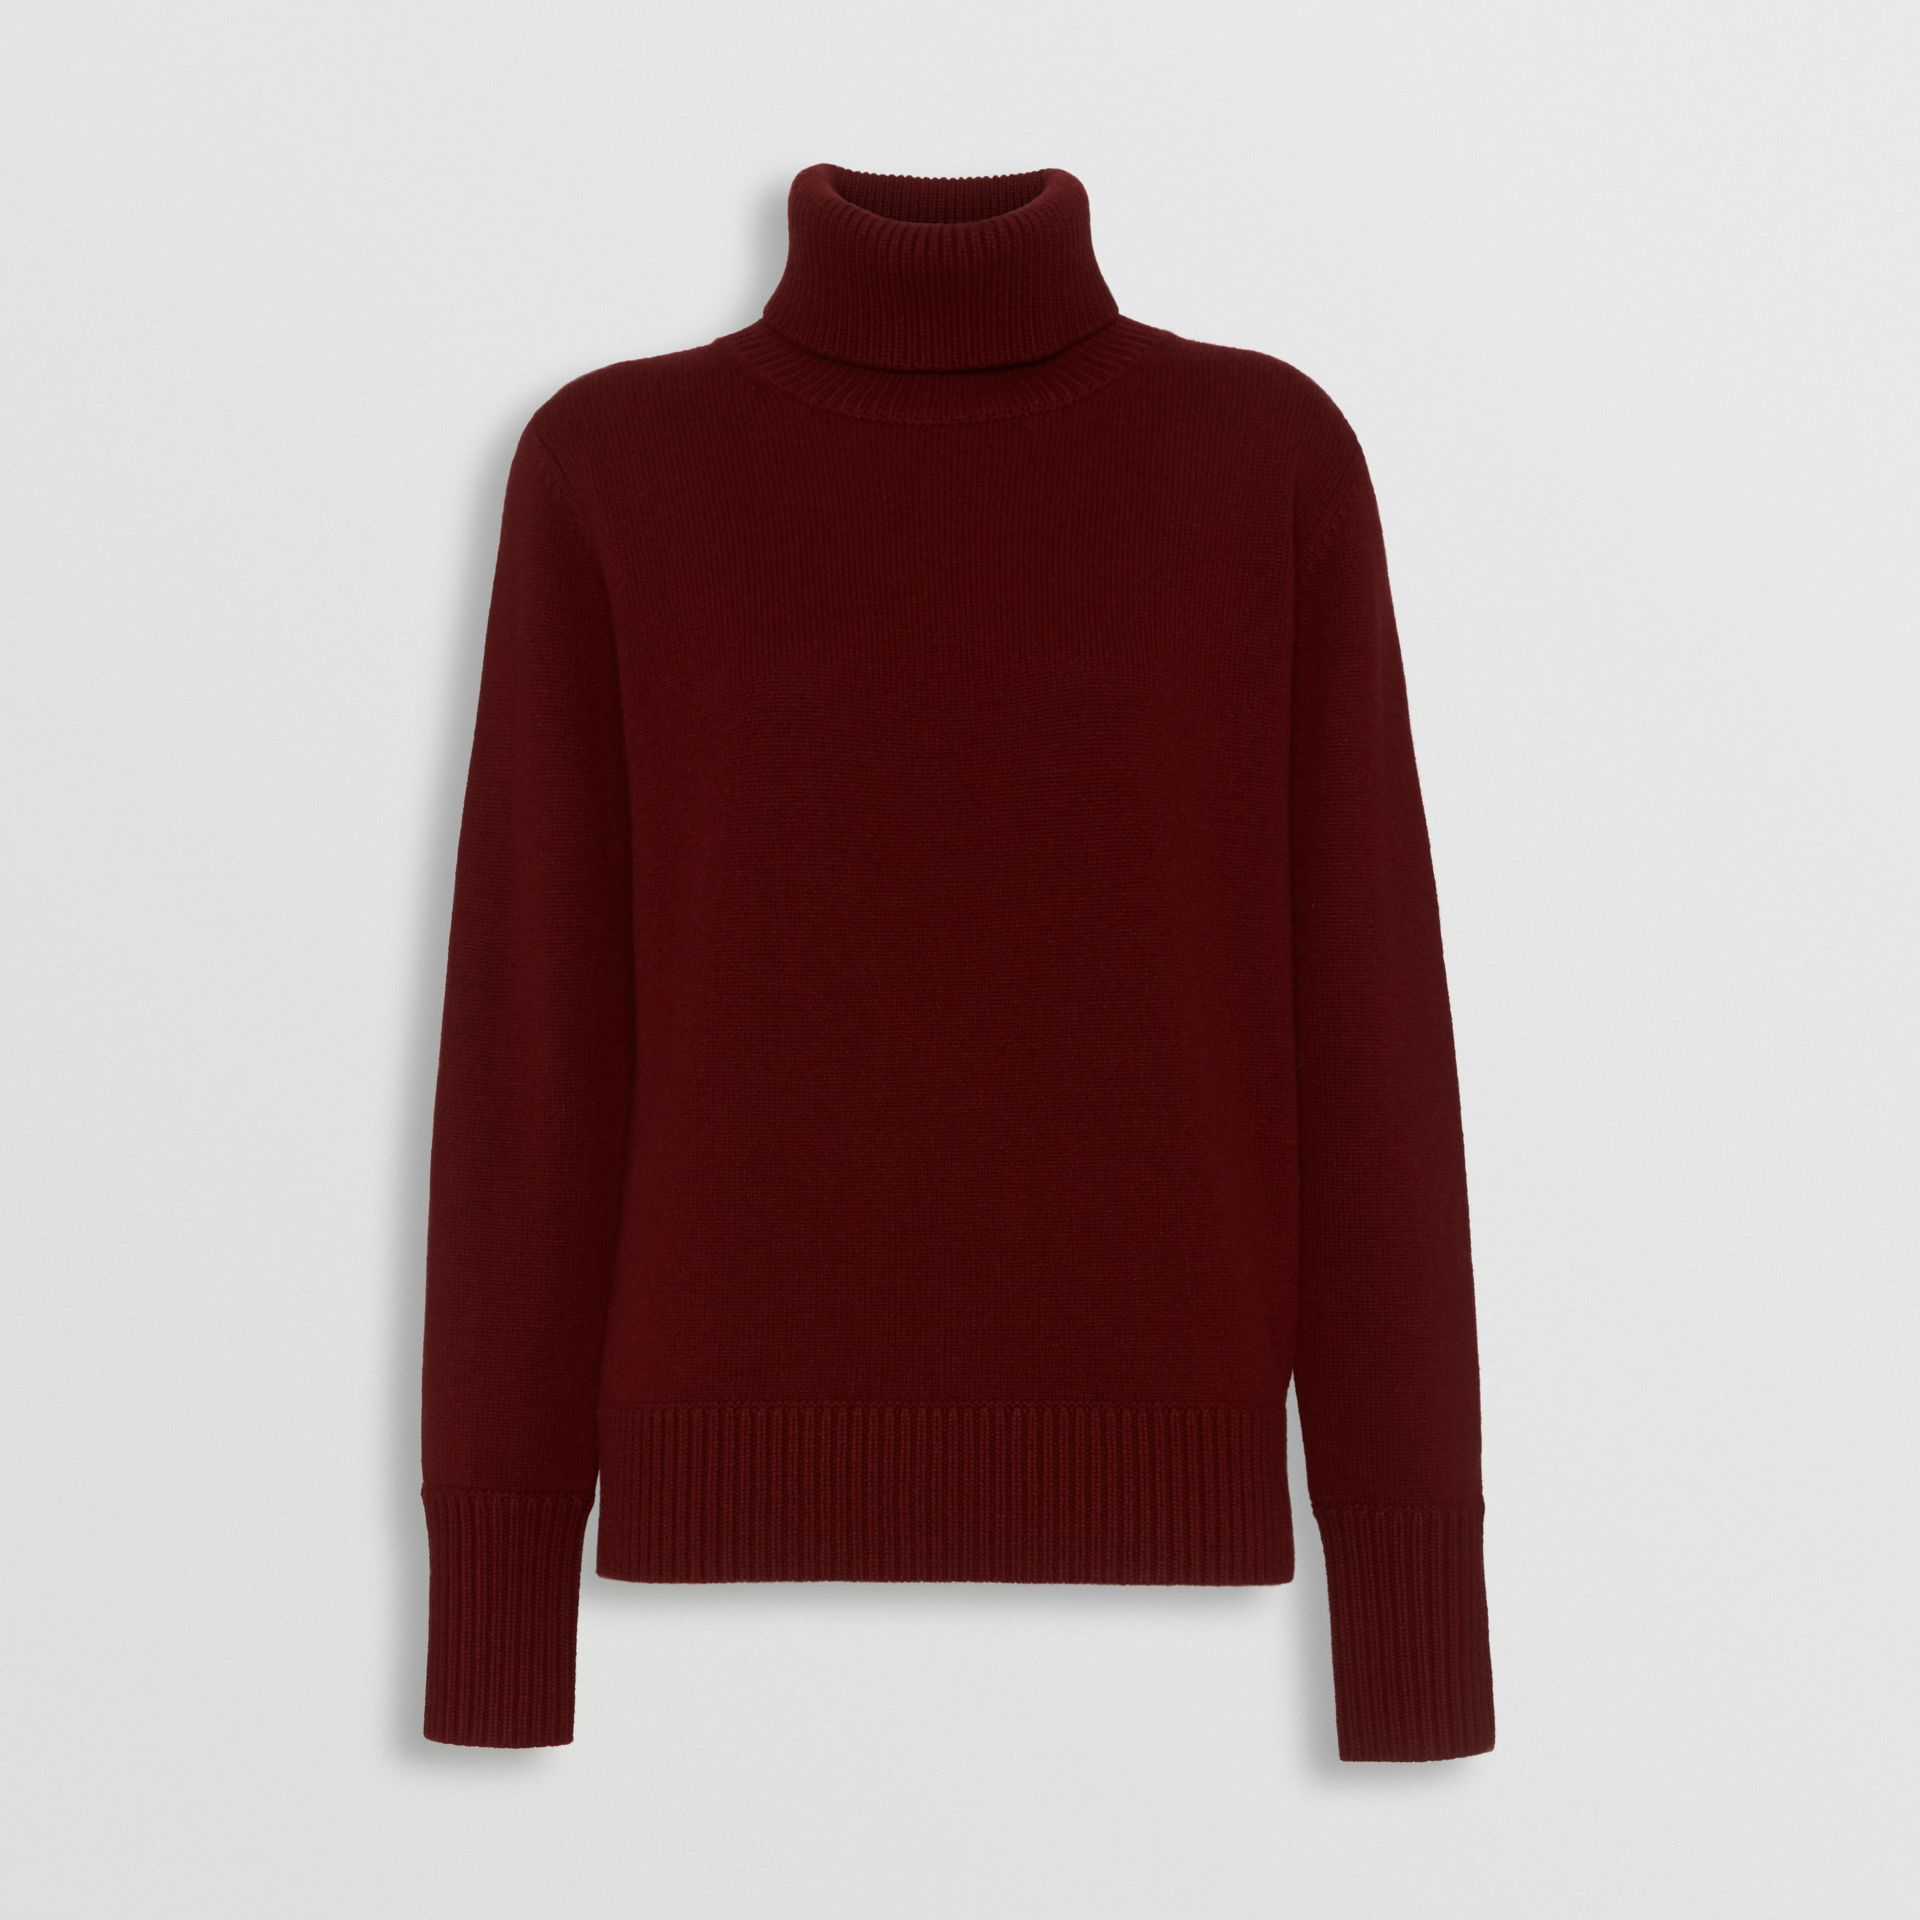 Archive Logo Appliqué Cashmere Roll-neck Sweater in Red - Women | Burberry - gallery image 3